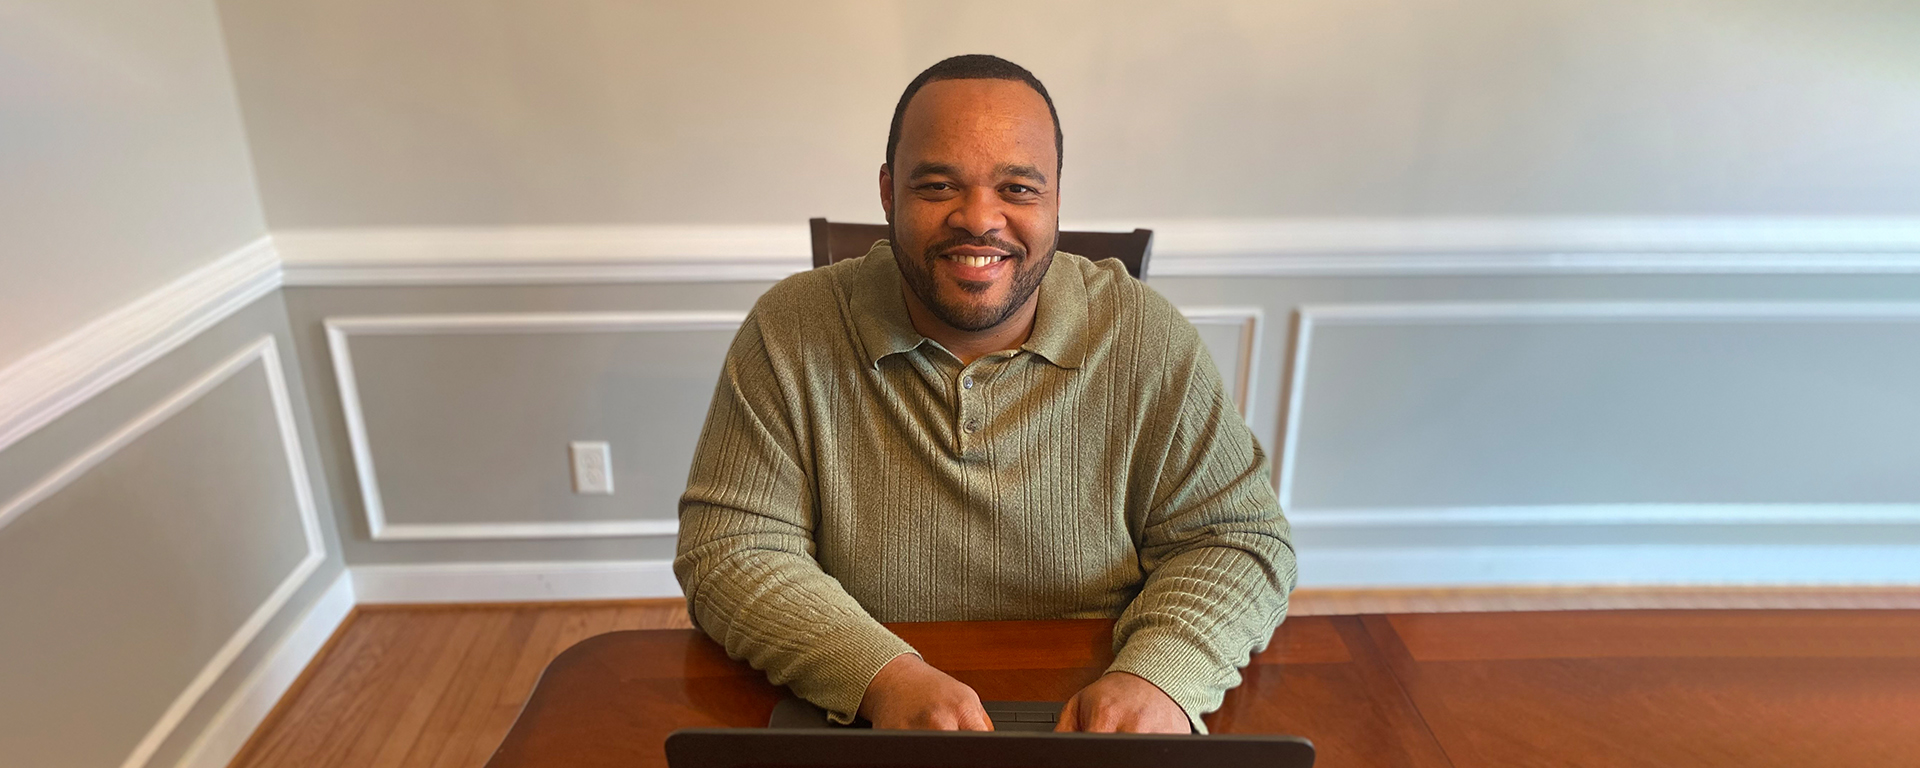 Tyrell, a Capital One associate, sits at his desk working from home and talks about Capital One having his dream job